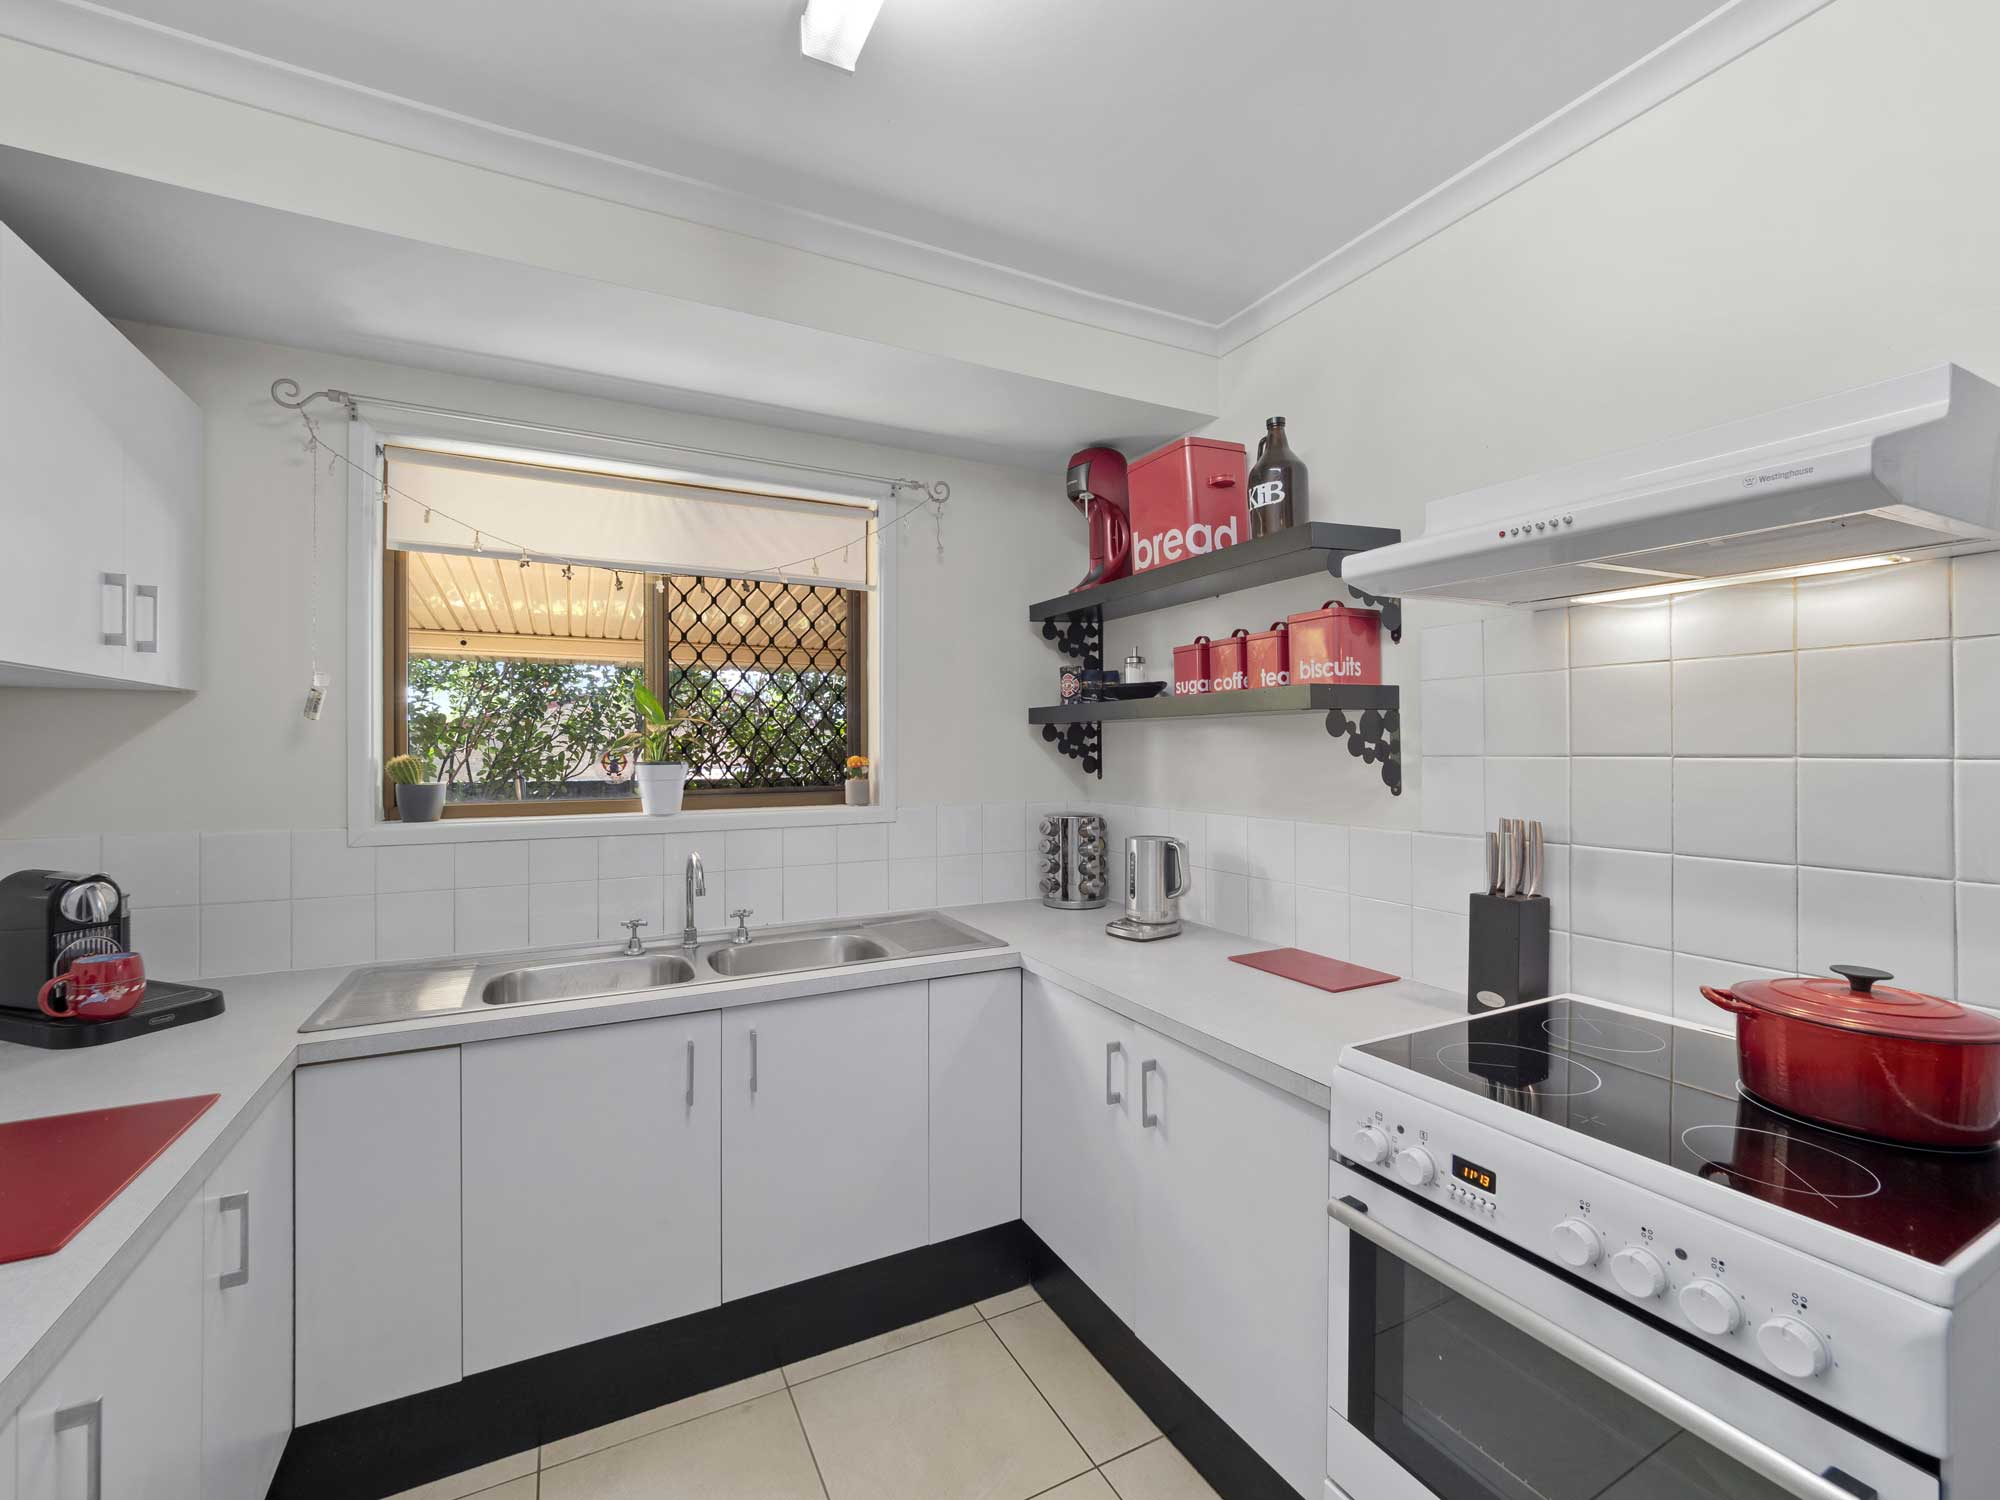 Capturing the open plan living of the home for sale at Mitchelton